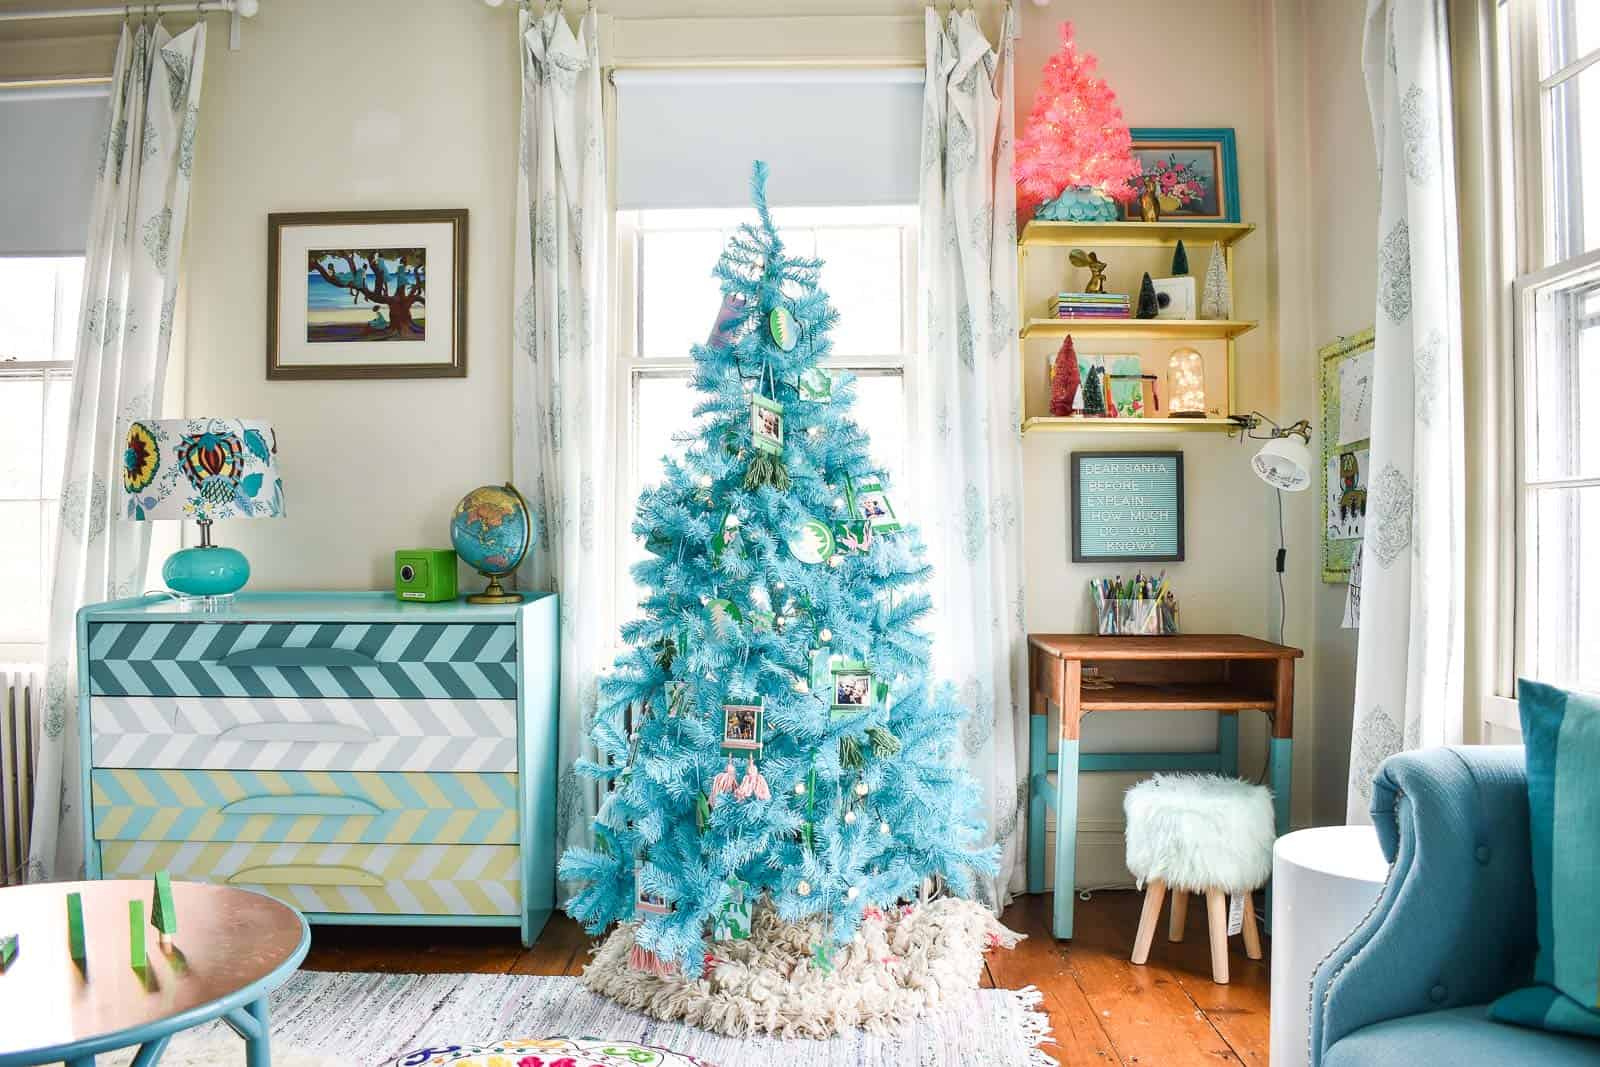 Colorful Christmas Tree Images.Kids Blue Christmas Tree At Charlotte S House